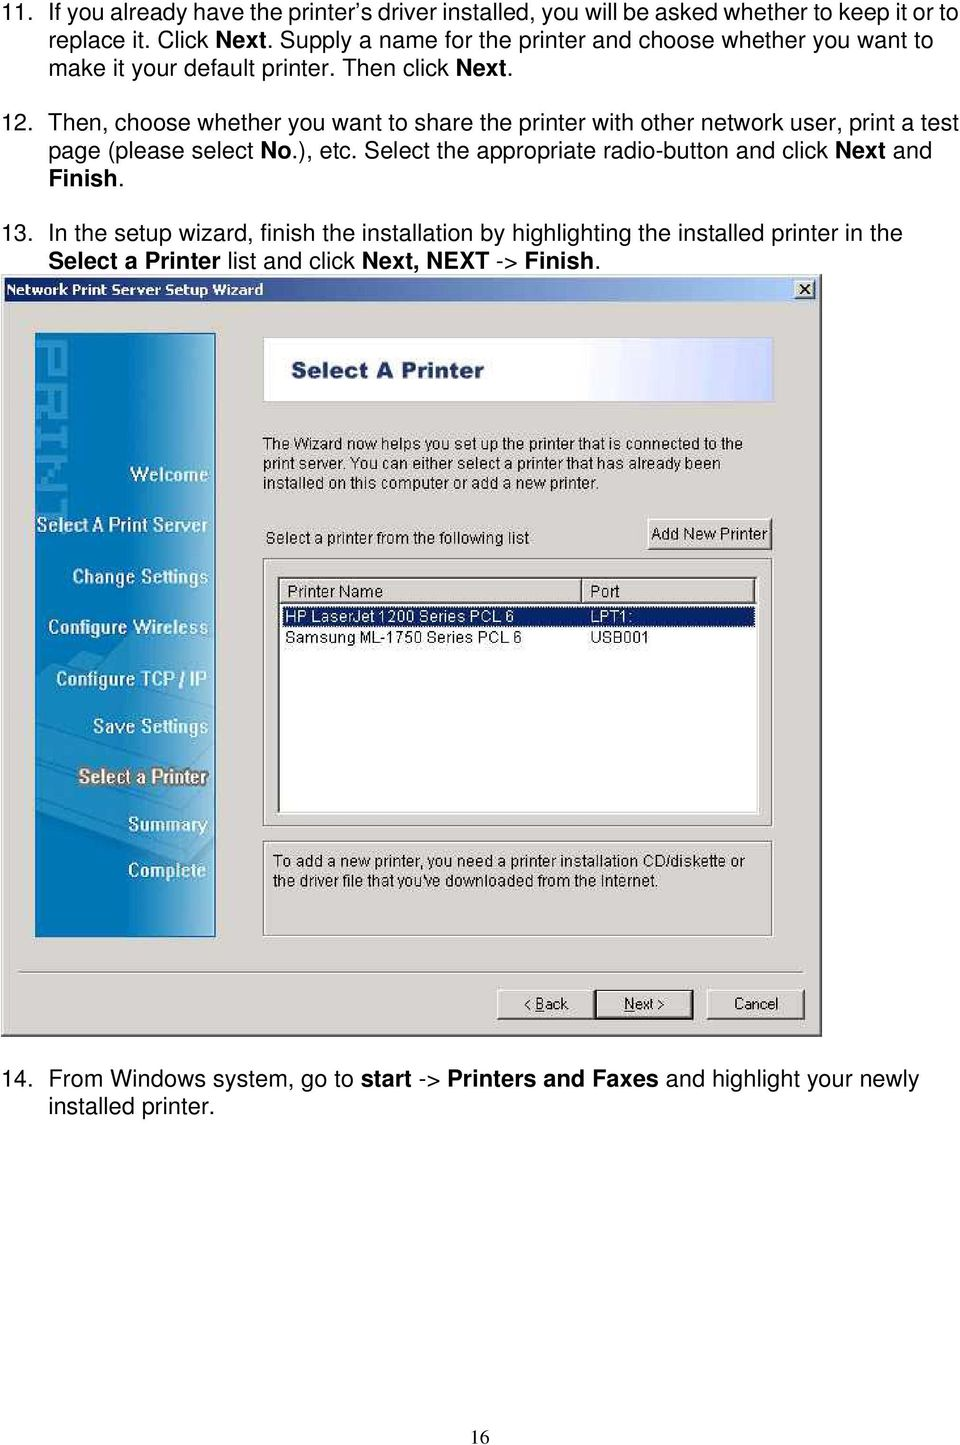 Then, choose whether you want to share the printer with other network user, print a test page (please select No.), etc.